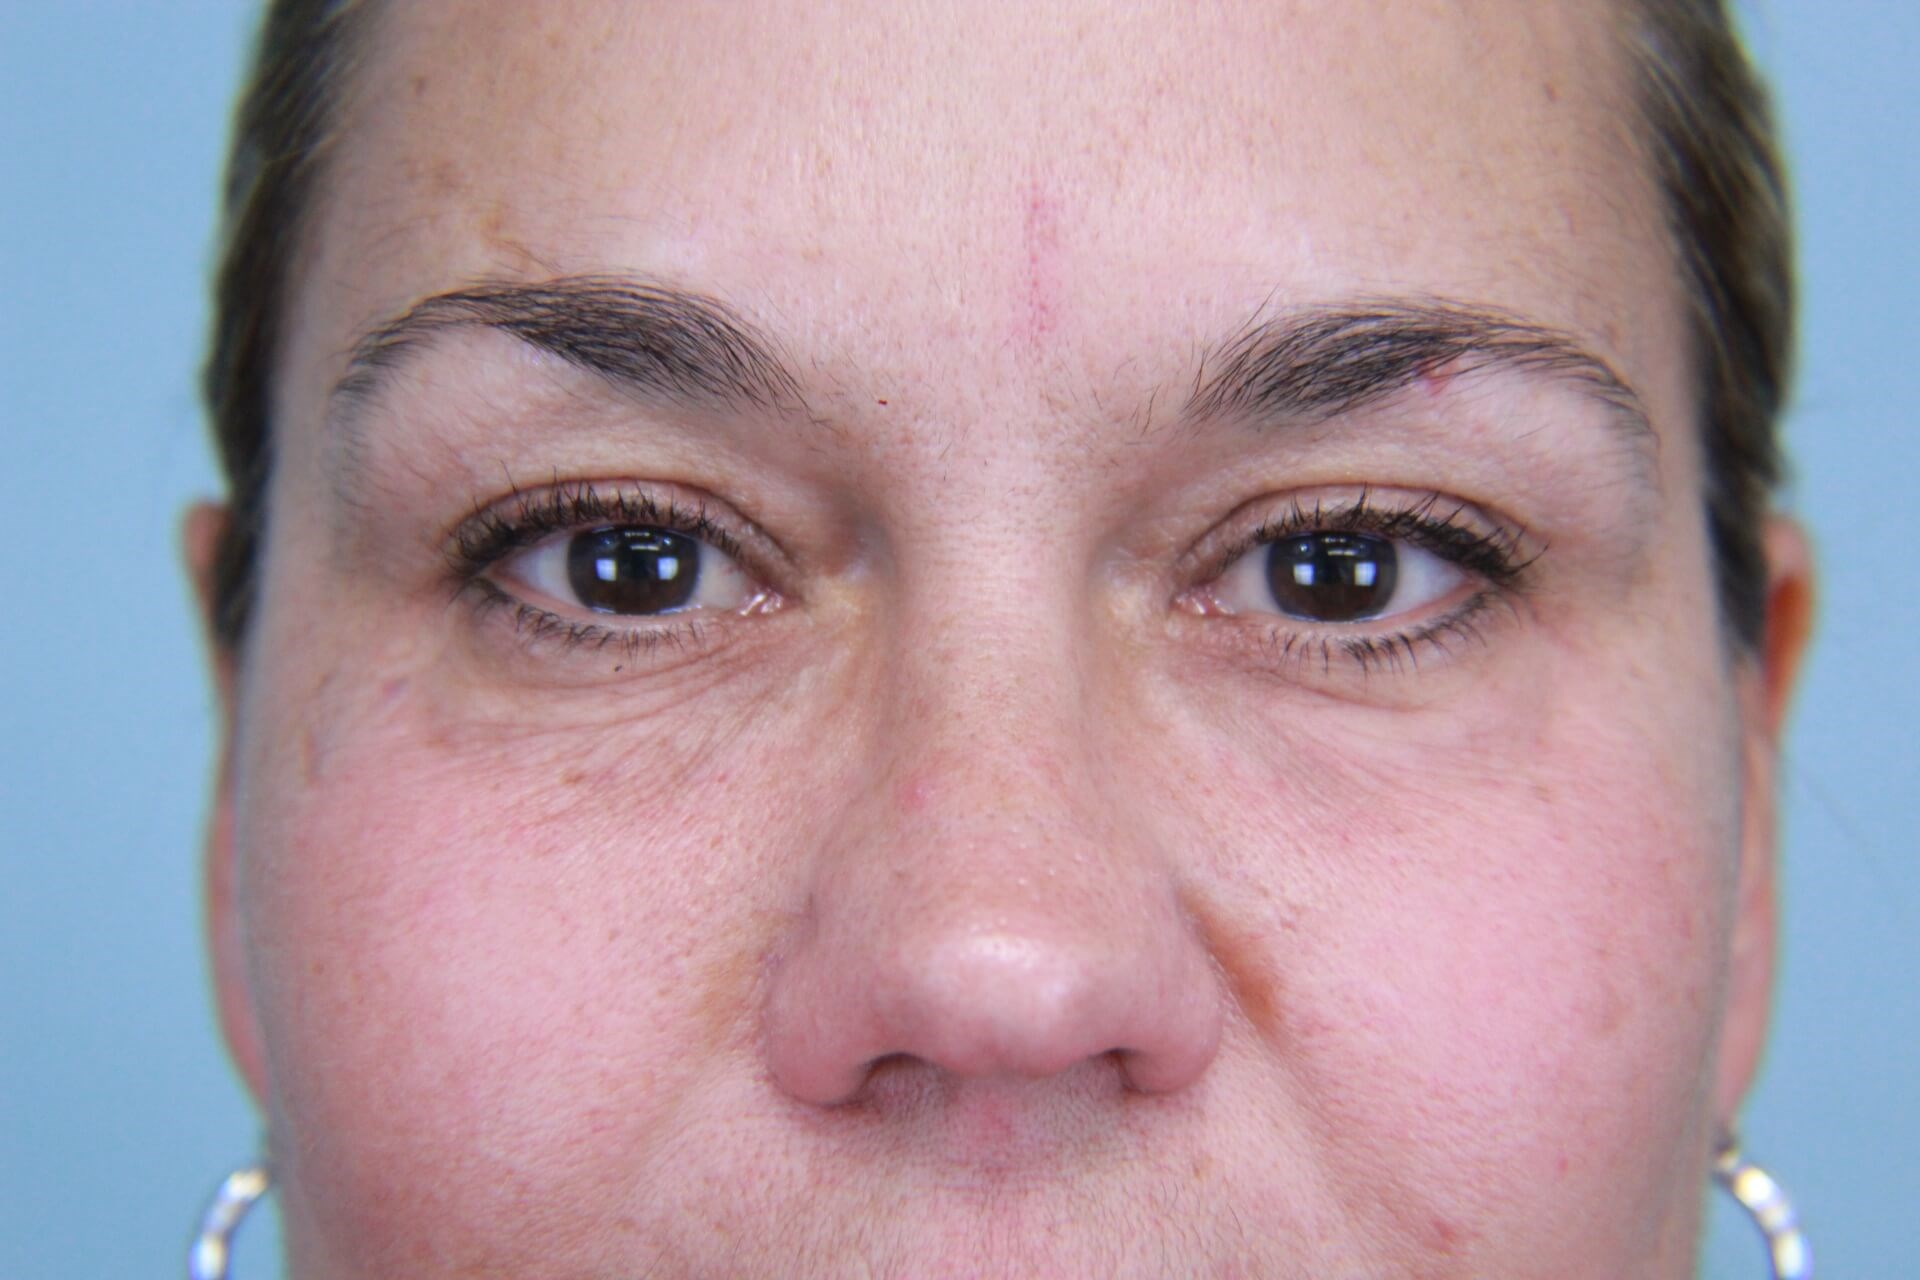 Facial Fillers to Tear Troughs After